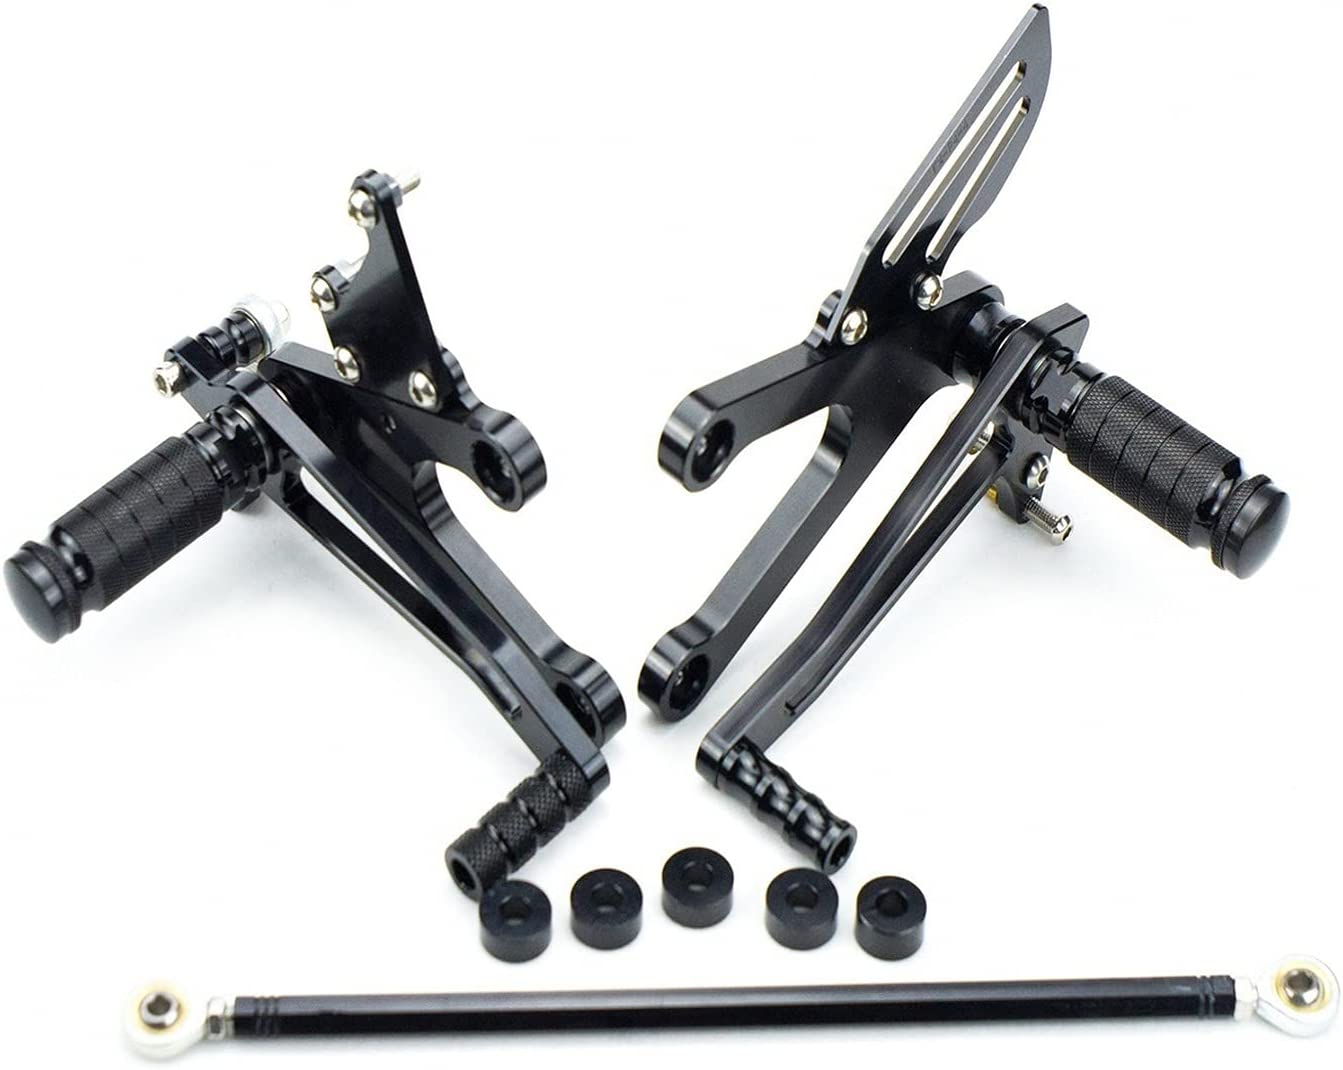 Demeanor Motorcycle Pedal Accessories Forwa Foot Bombing new work Pegs New products, world's highest quality popular!